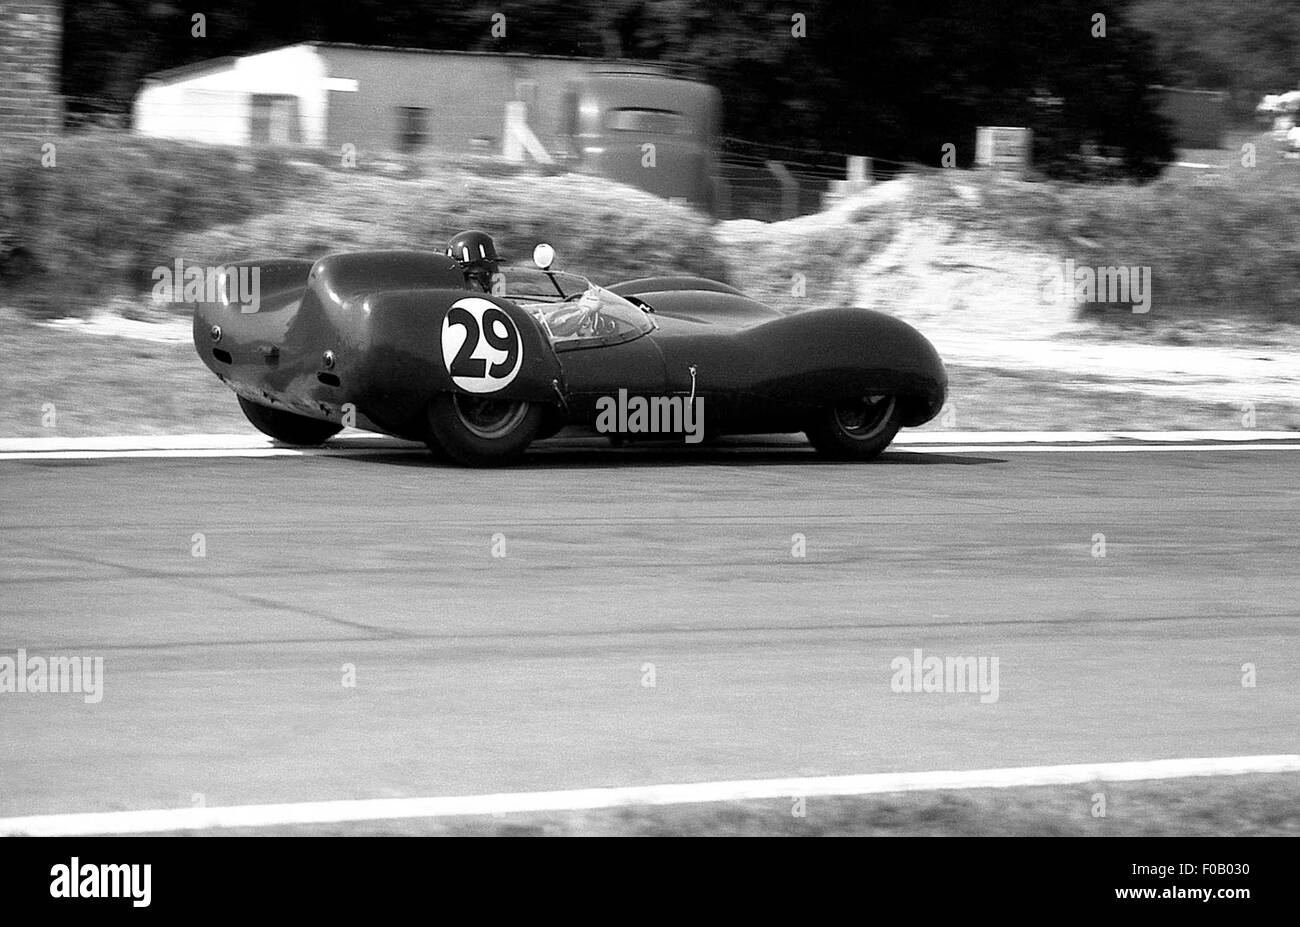 Tourist Trophy Goodwood 5e septembre 1959. Graham Hill, Alan Stacey Lotus 15 Climax. Photo Stock